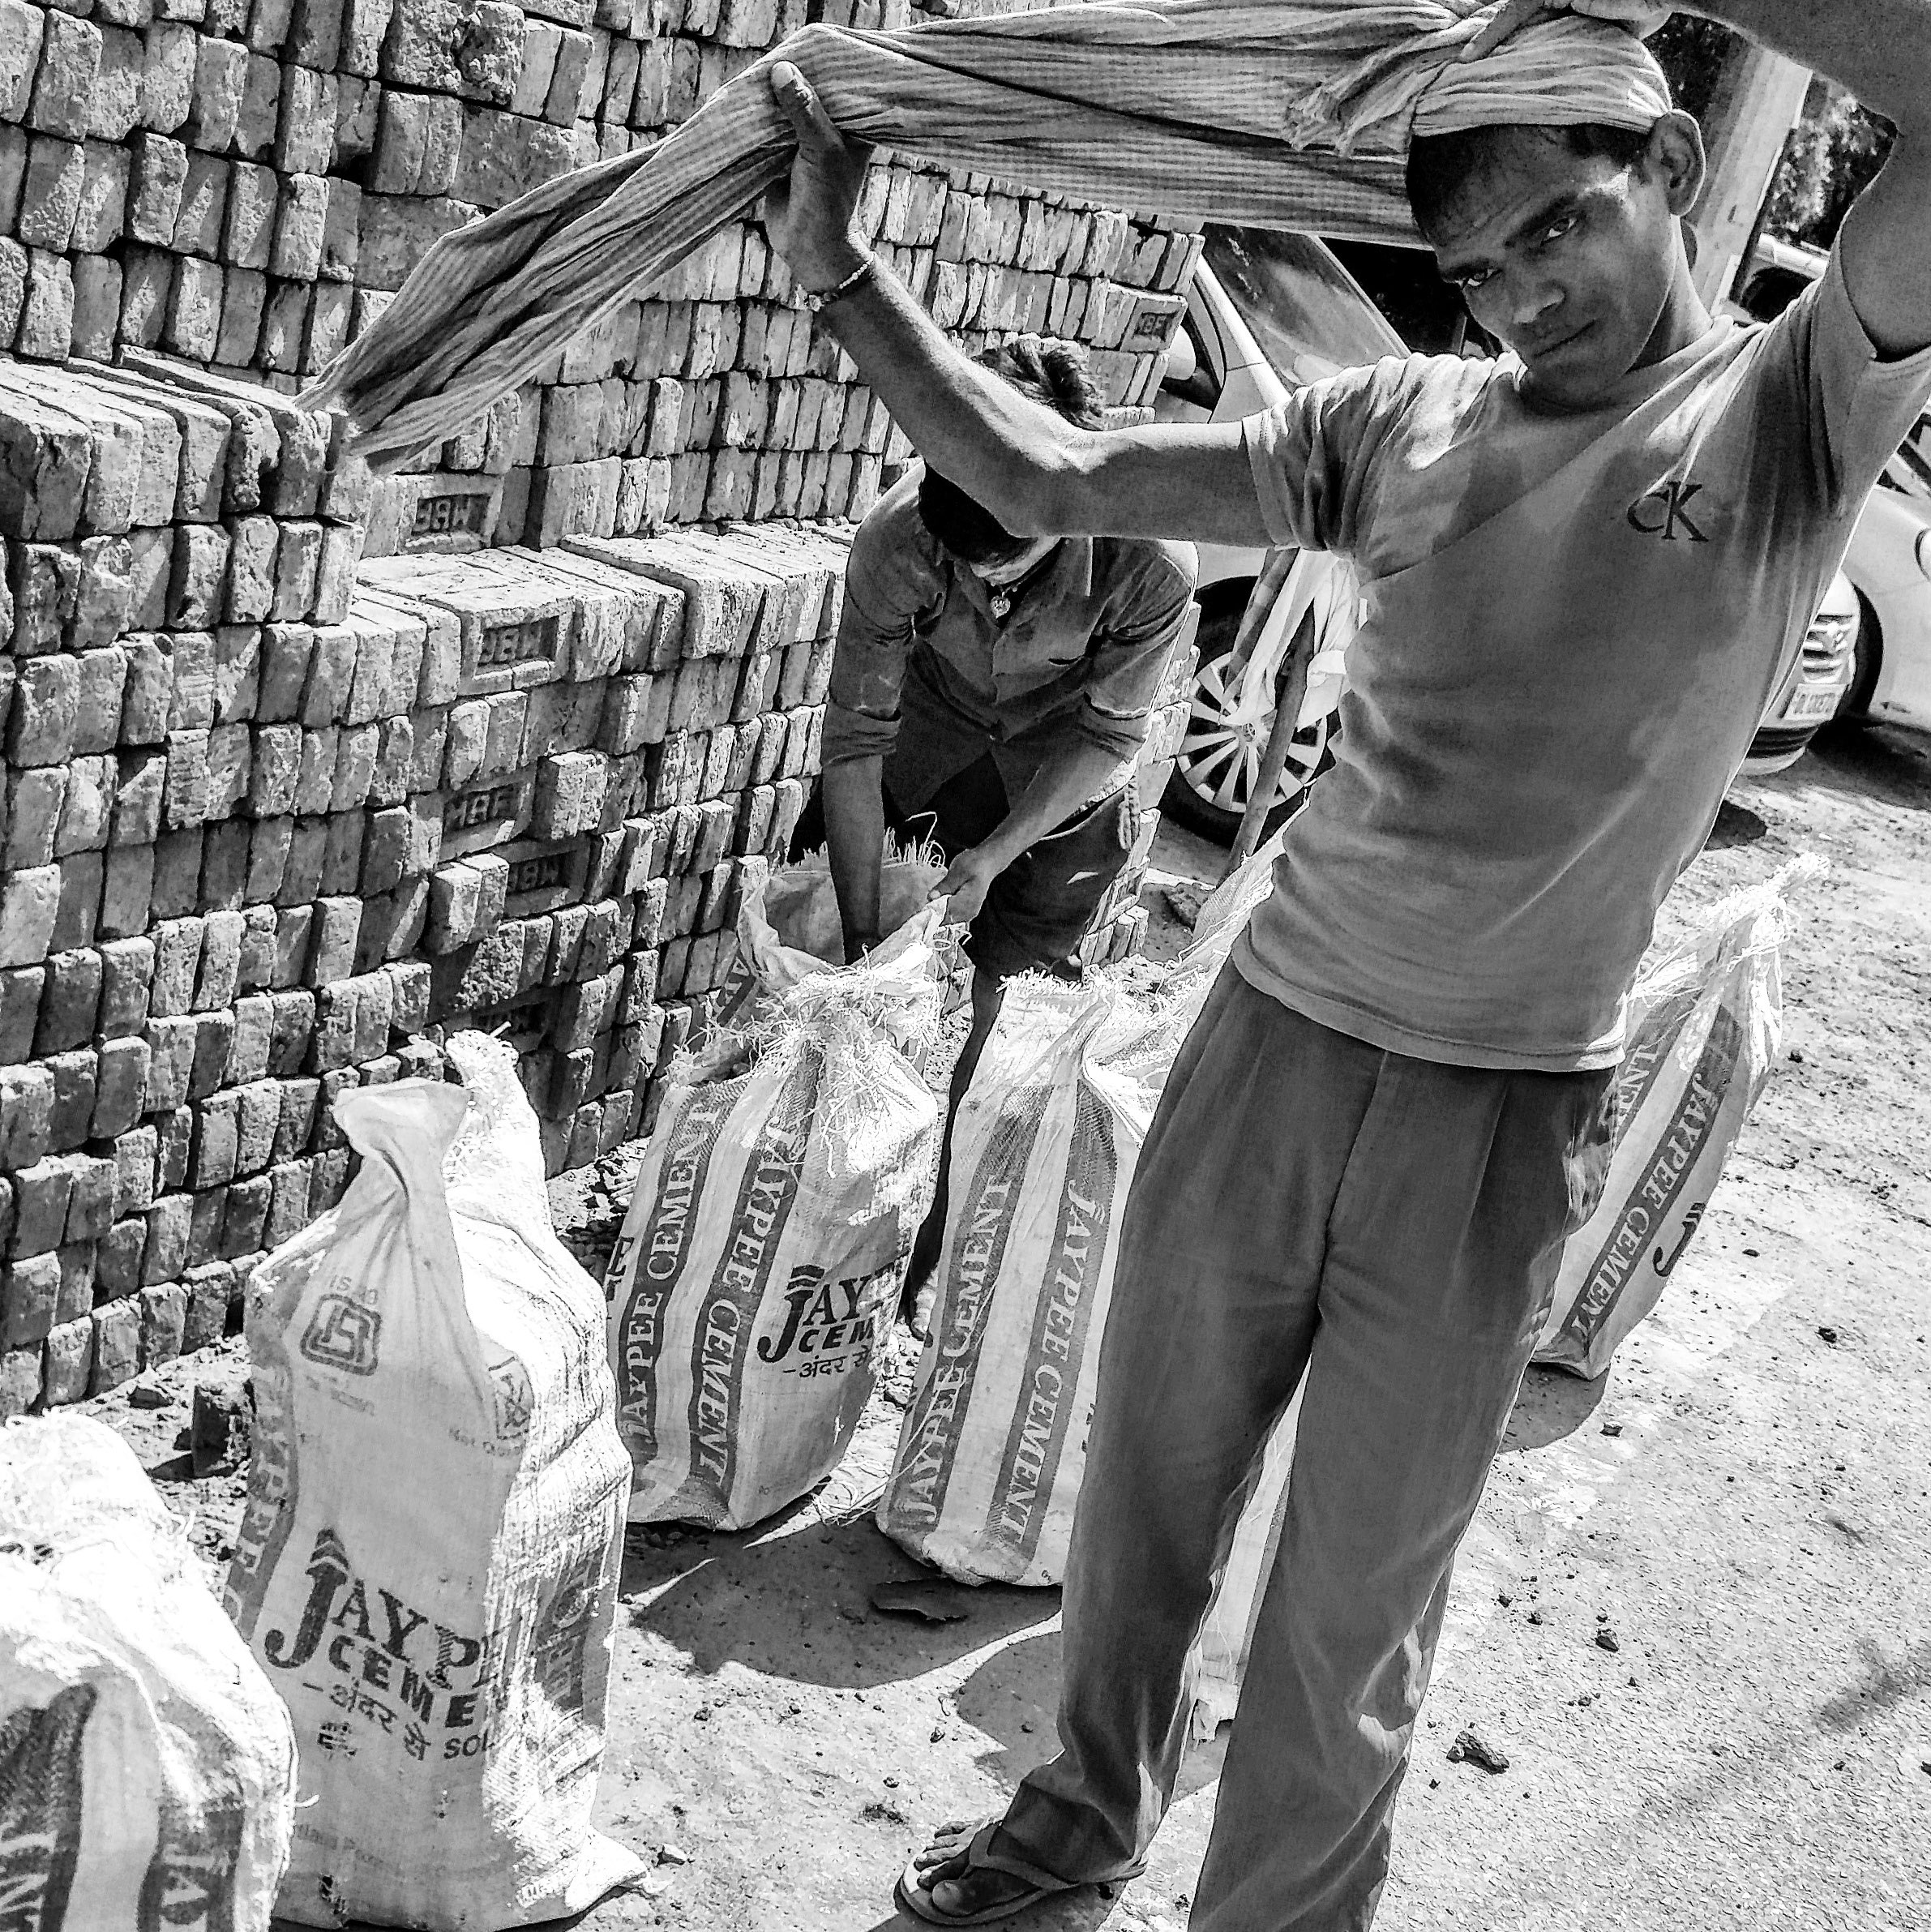 A daily wage worker tying a piece of cloth on his head before he picks up the bags filled with bricks